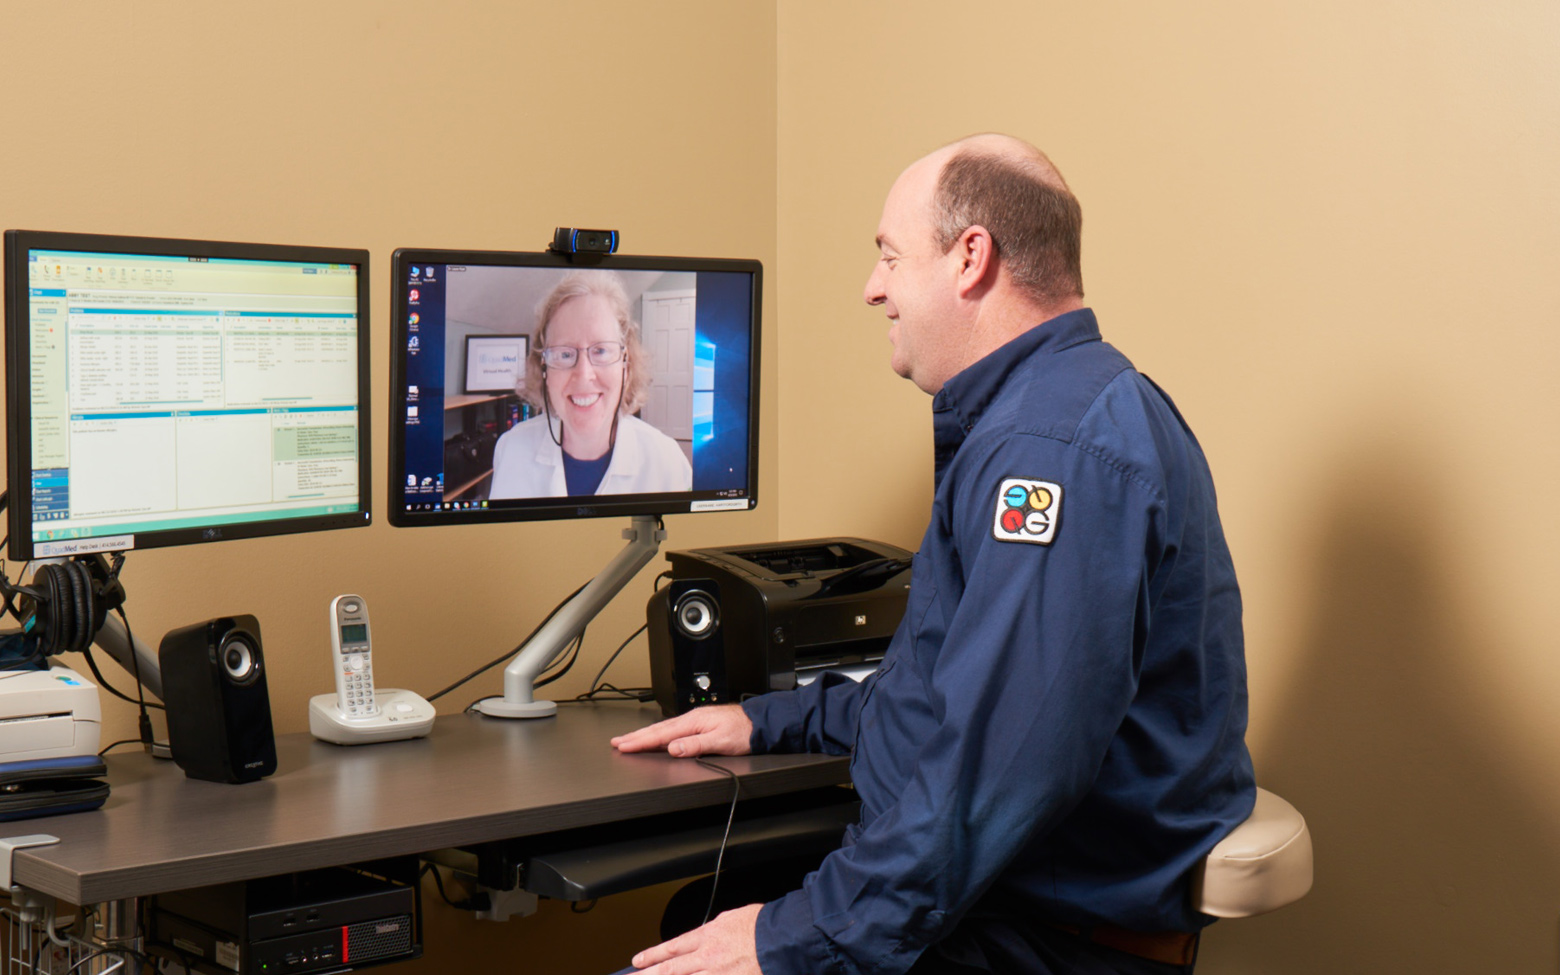 Patient having a virtual health visit with a doctor